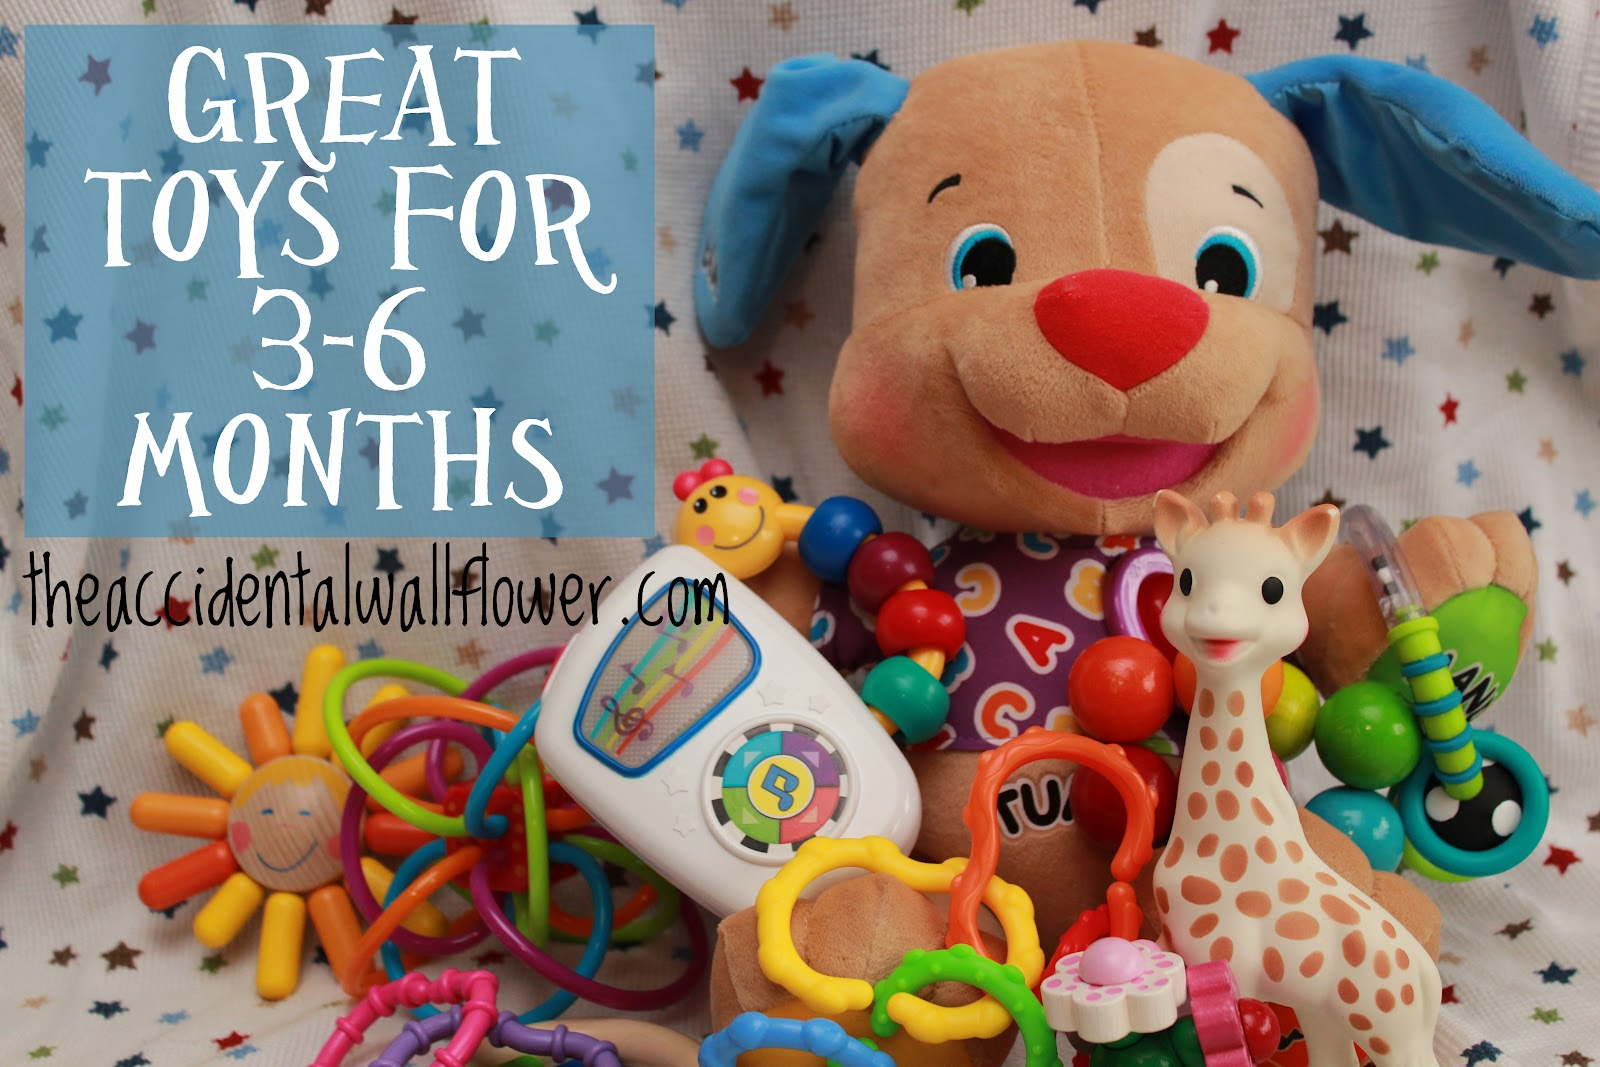 Great Toys For 3 6 Months The Accidental Wallflower